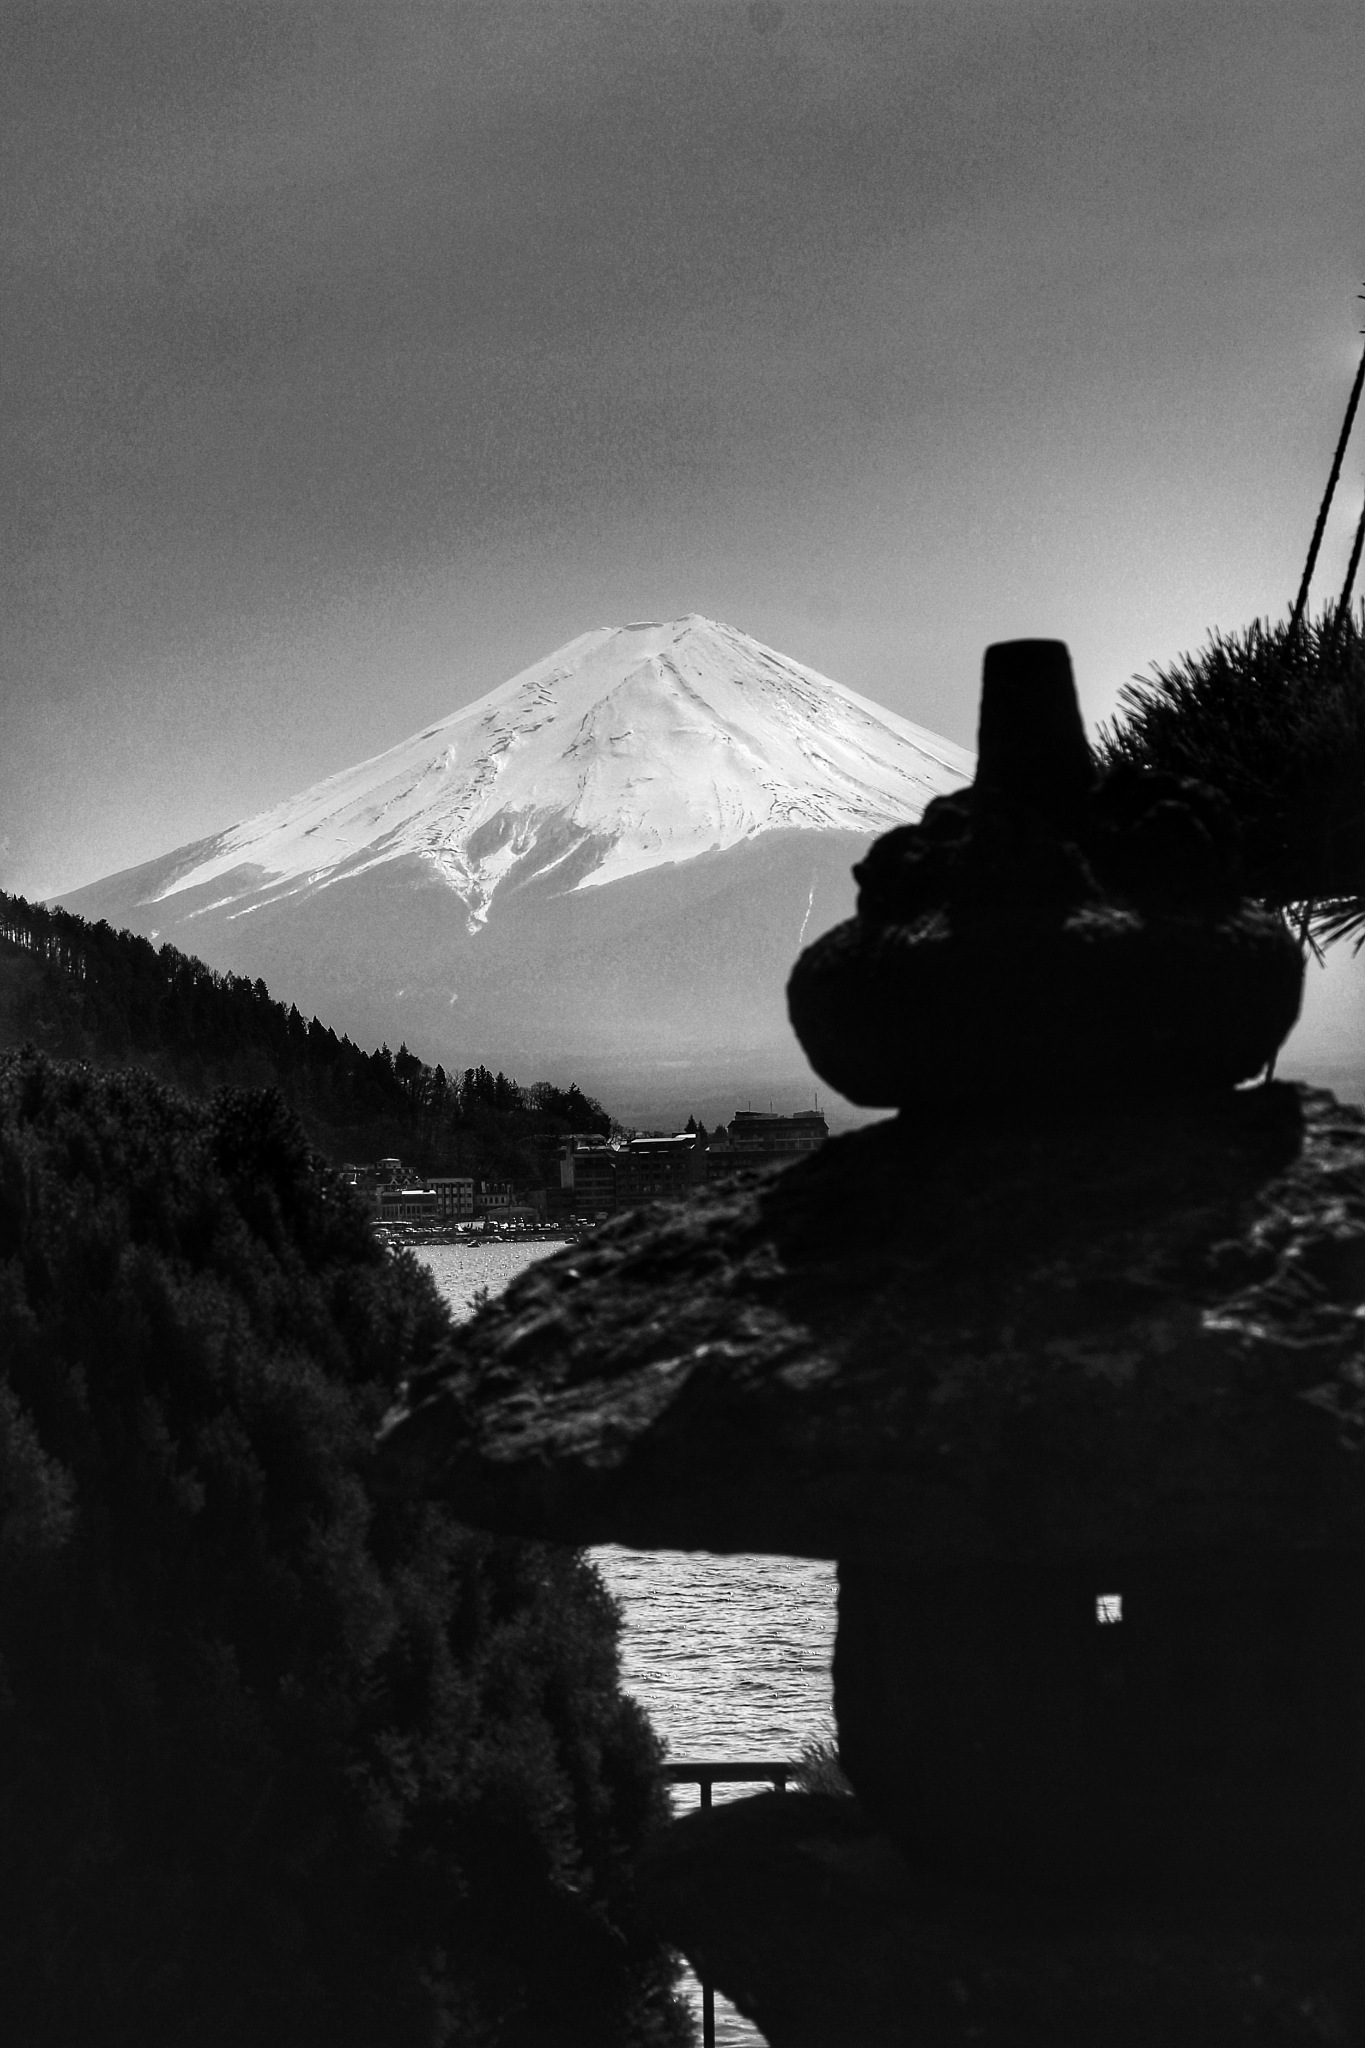 Mt Fuji by Armed-with-a-smile